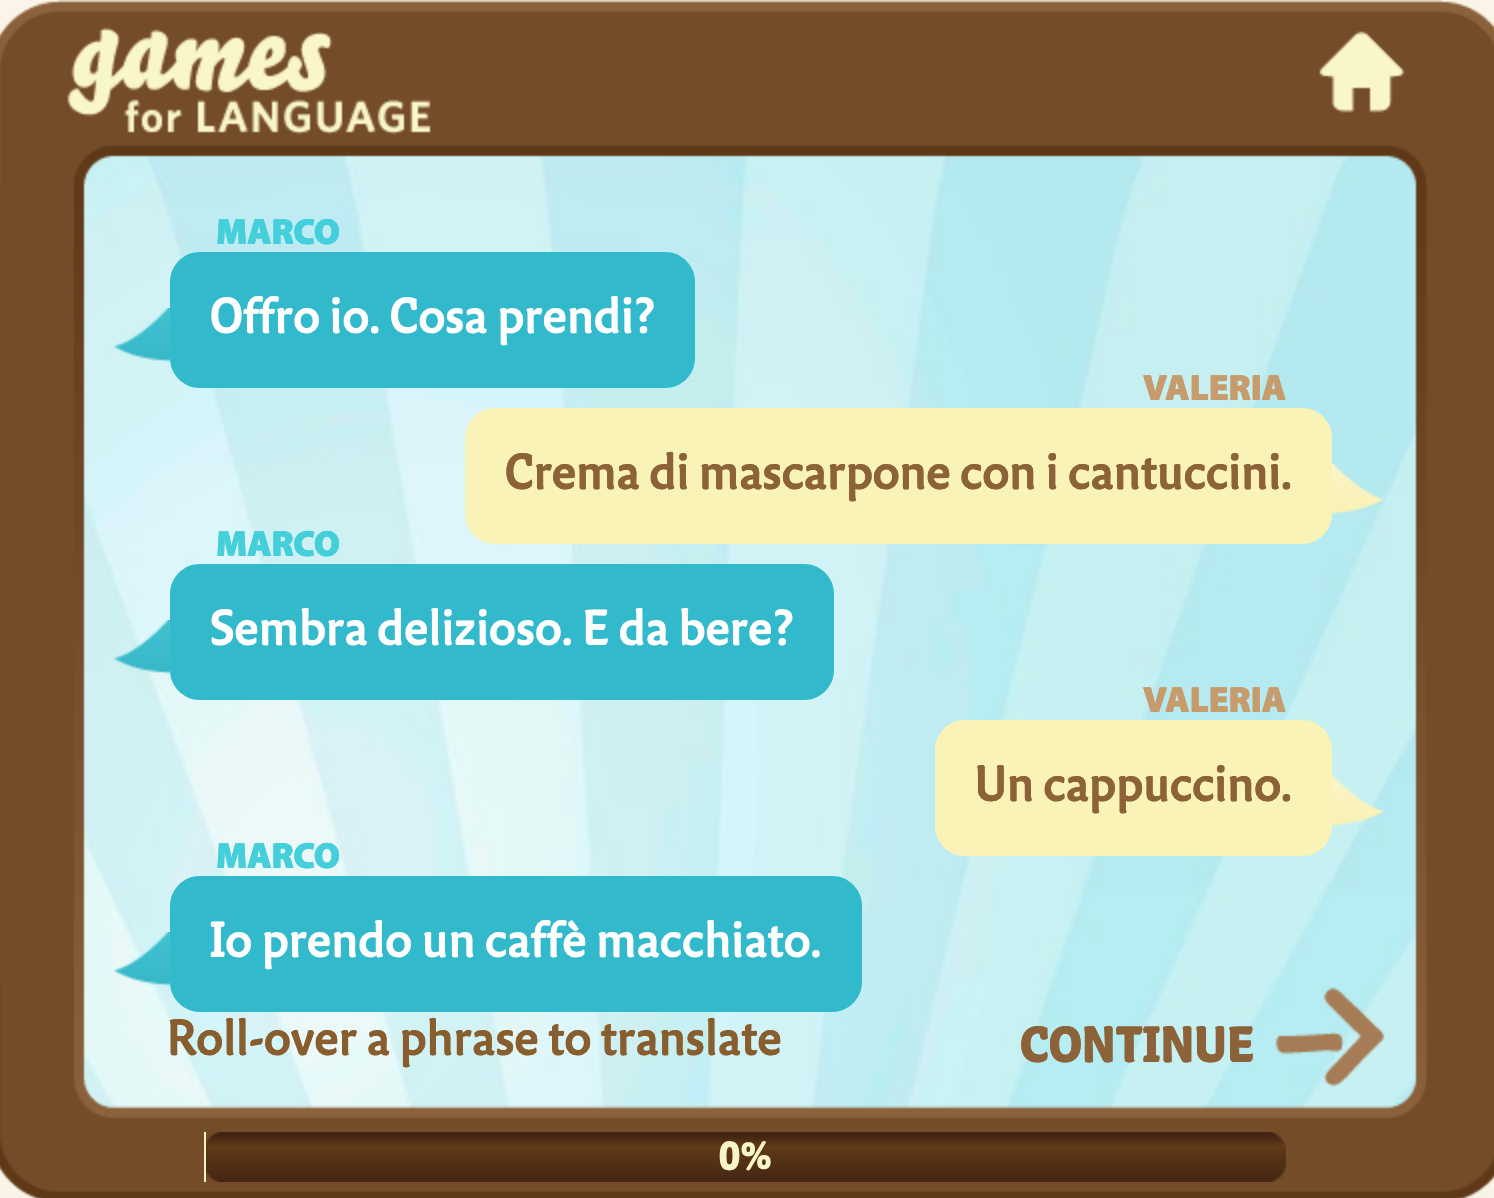 Gamesforlanguage.com: In an Italian café